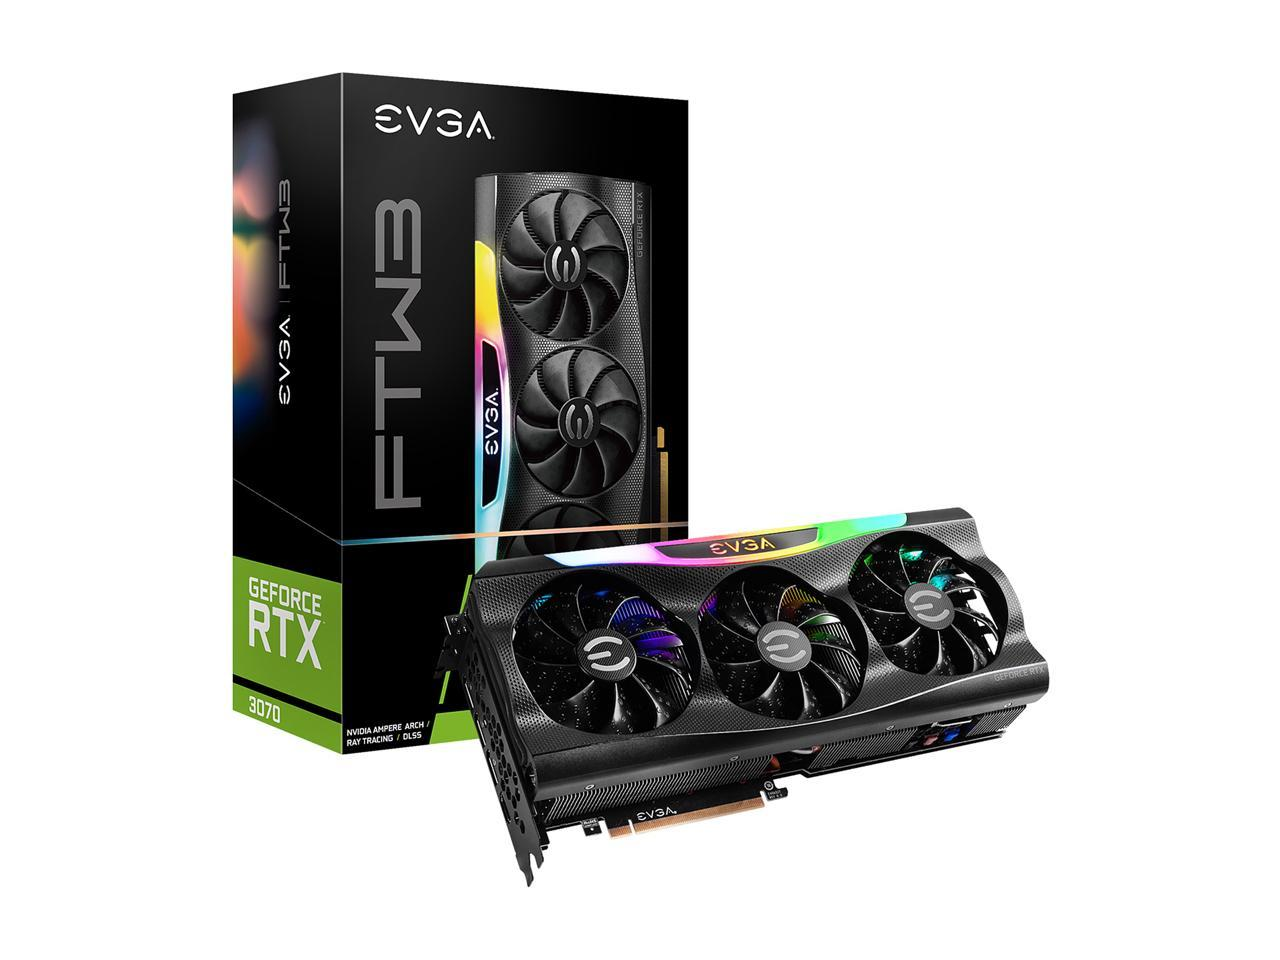 EVGA VCX 08G-P5-3765-KR GeForce RTX 3070 FTW3 GAMING+ 400 PSU EVGA Bundle IN STOCK